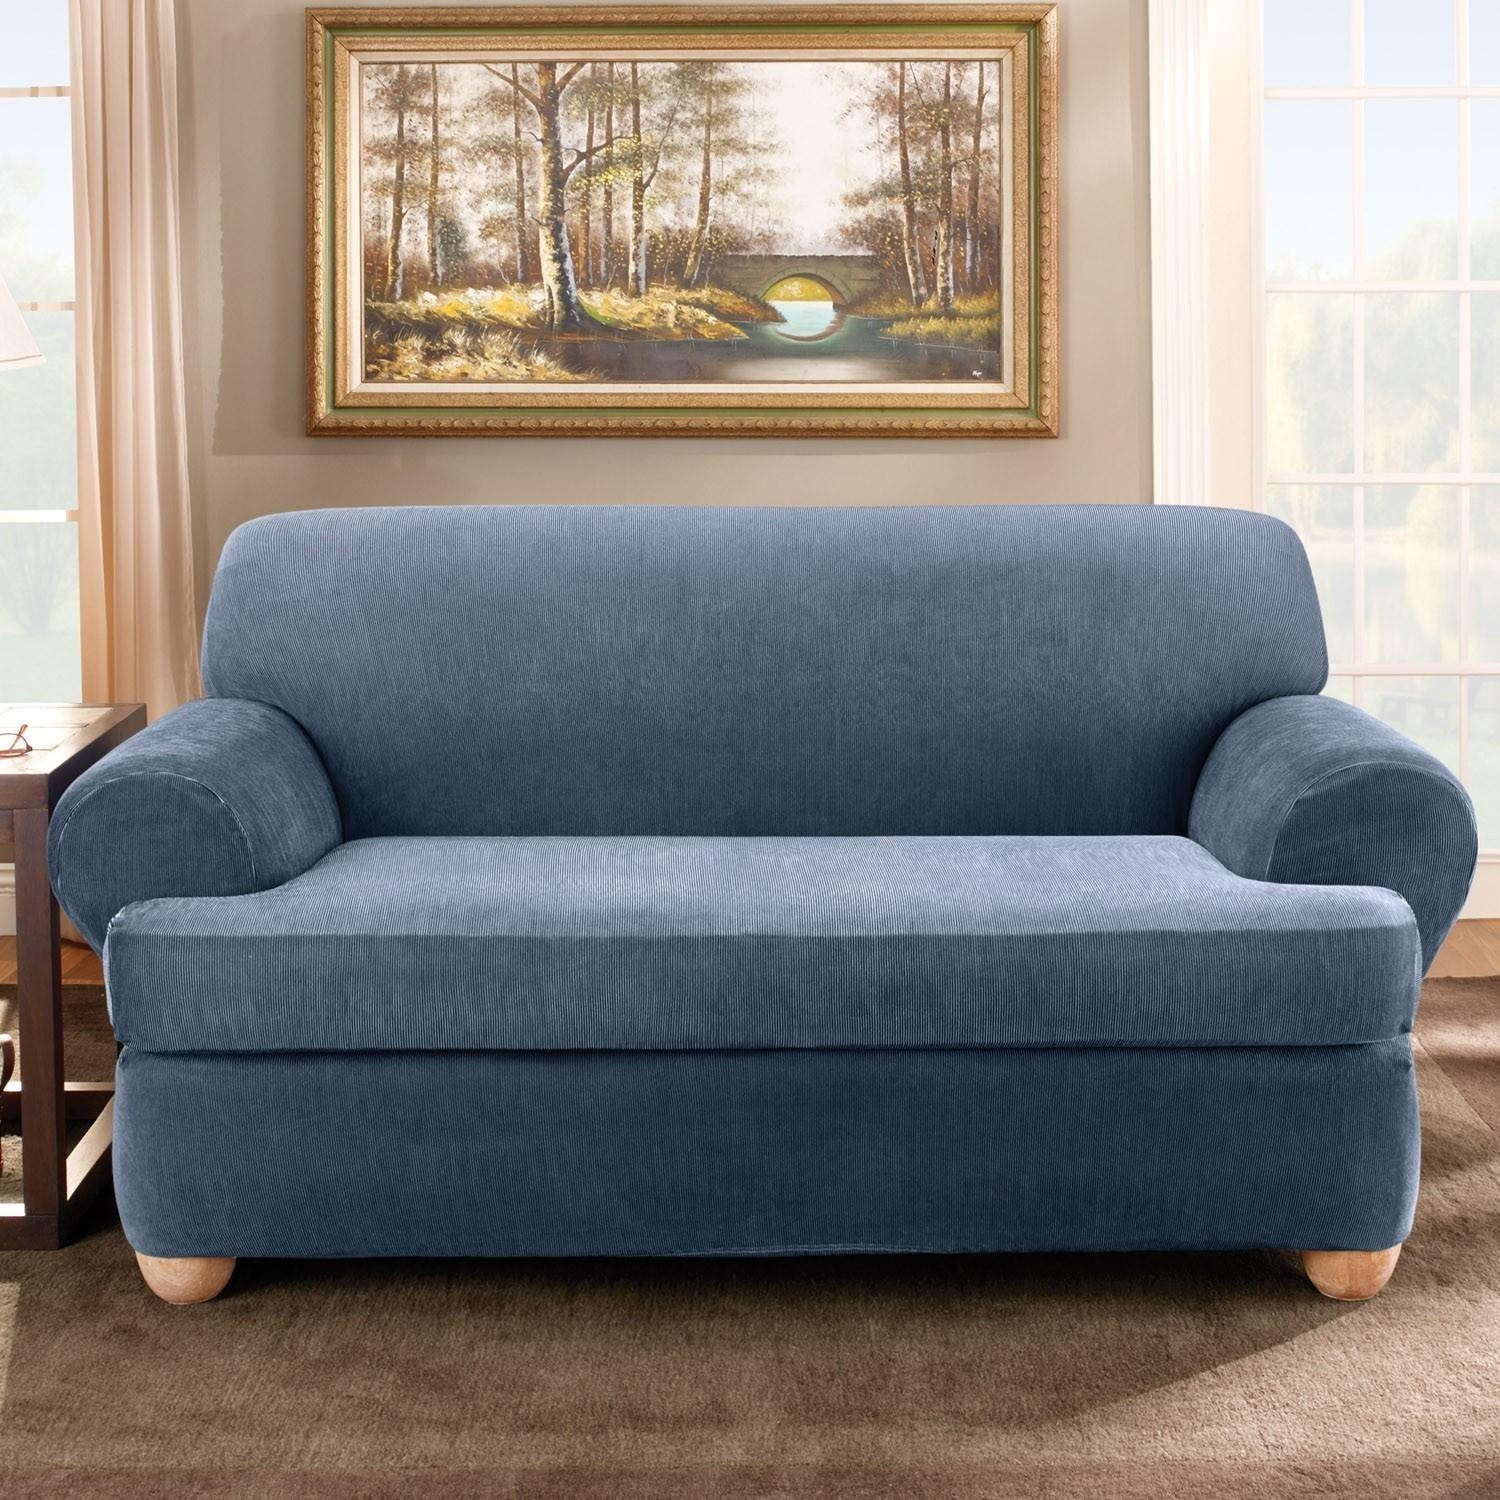 slipcover for sofa cushions separate power recliner repair 20 top loveseat slipcovers t cushion ideas